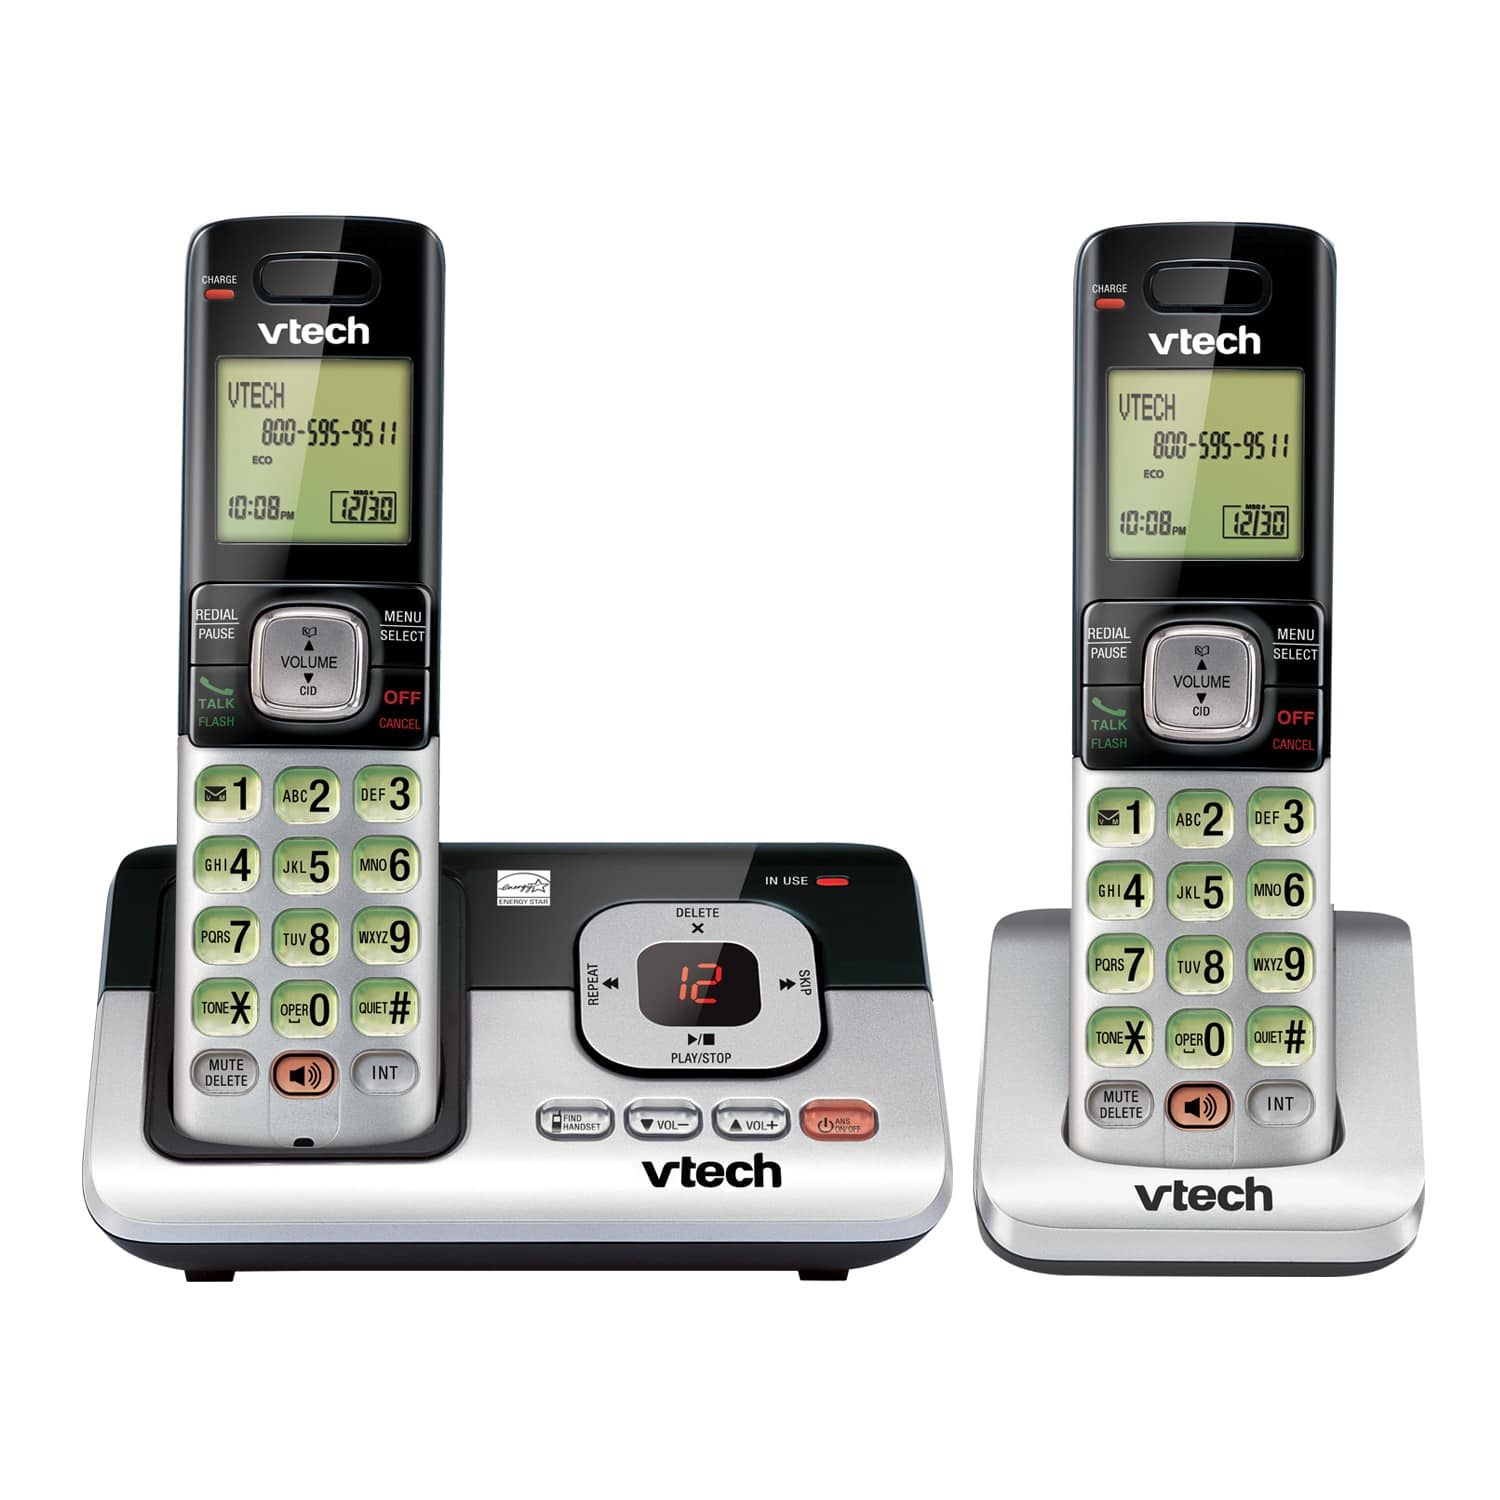 product support vtech cordless phones rh vtechphones com vtech phone manual cs6114 vtech phone manuals online